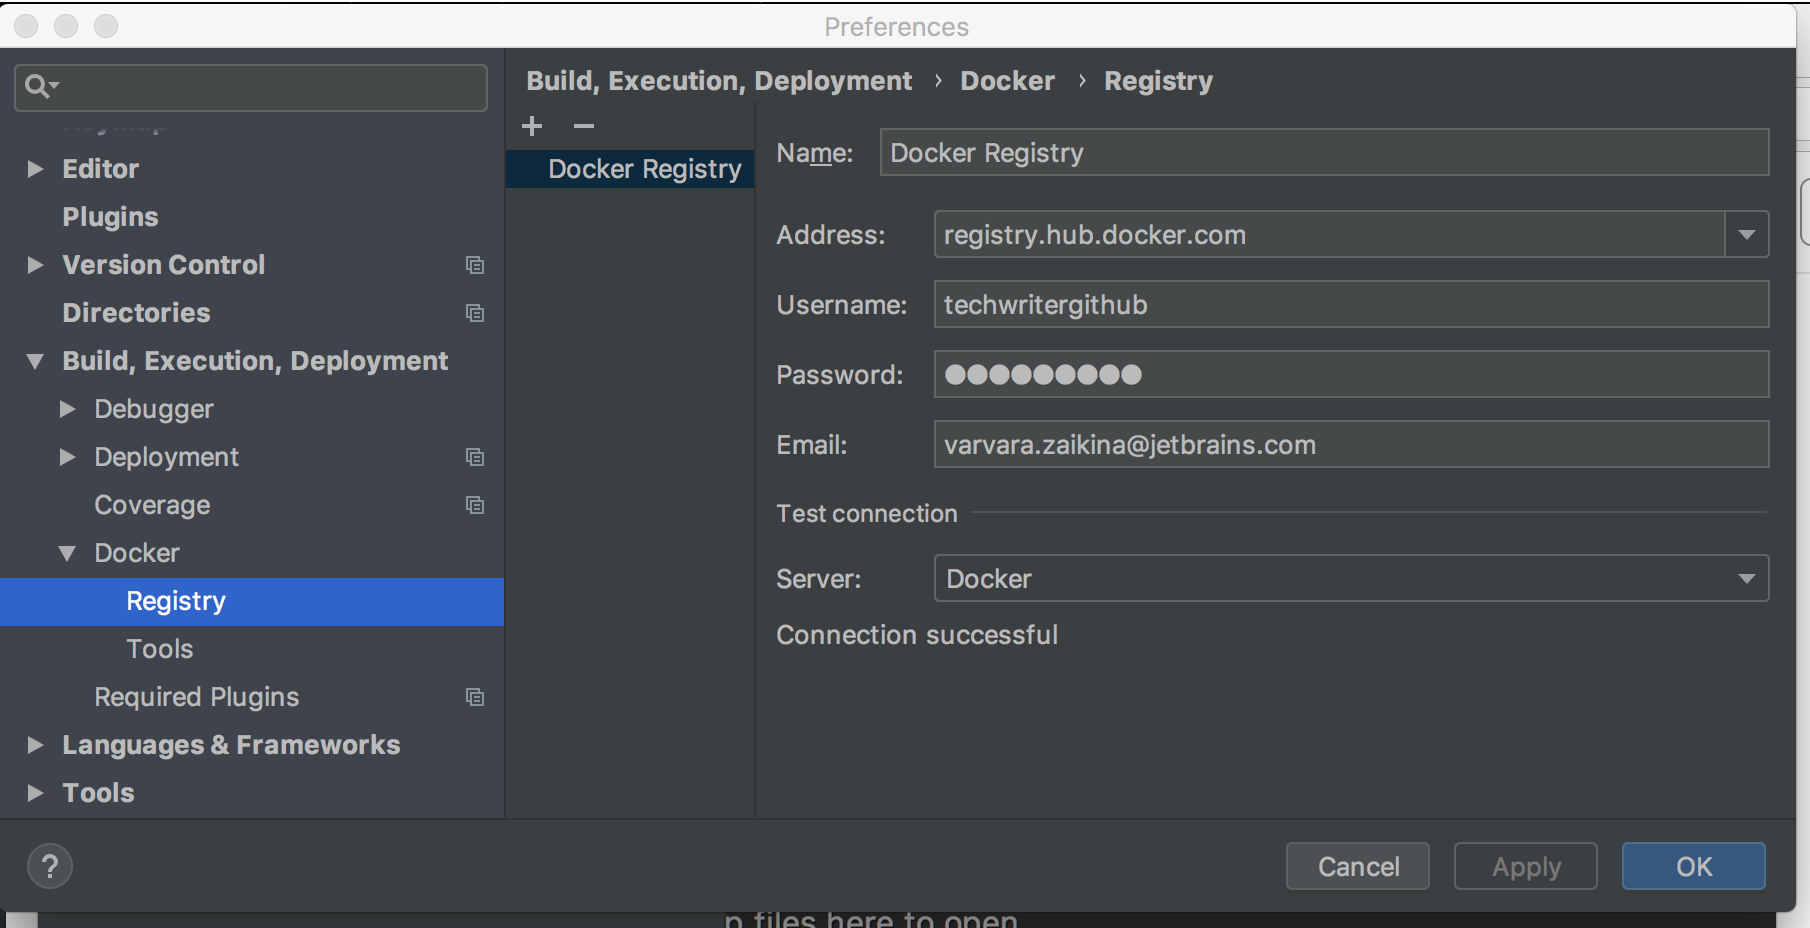 The Docker Registry dialog